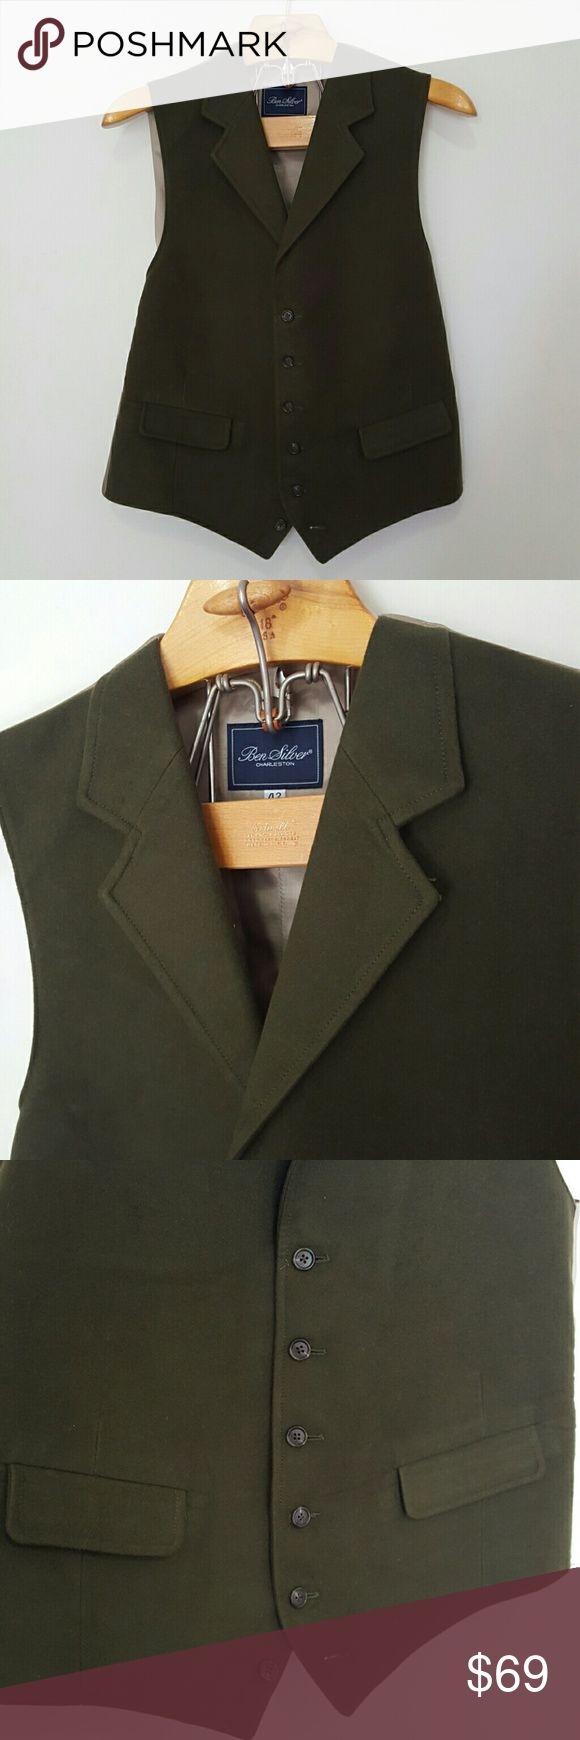 Ben Silver Dark Olive Green Sturdy Formal Vest Ben Silver Dark Green Vest / Beige backing Size: 42 Thick / Sturdy Front material Great Condition!   Offers always welcome!   In an effort to improve - All items now ship same or next business day!  Thanks for shopping!  No trades Ben Silver Jackets & Coats Vests